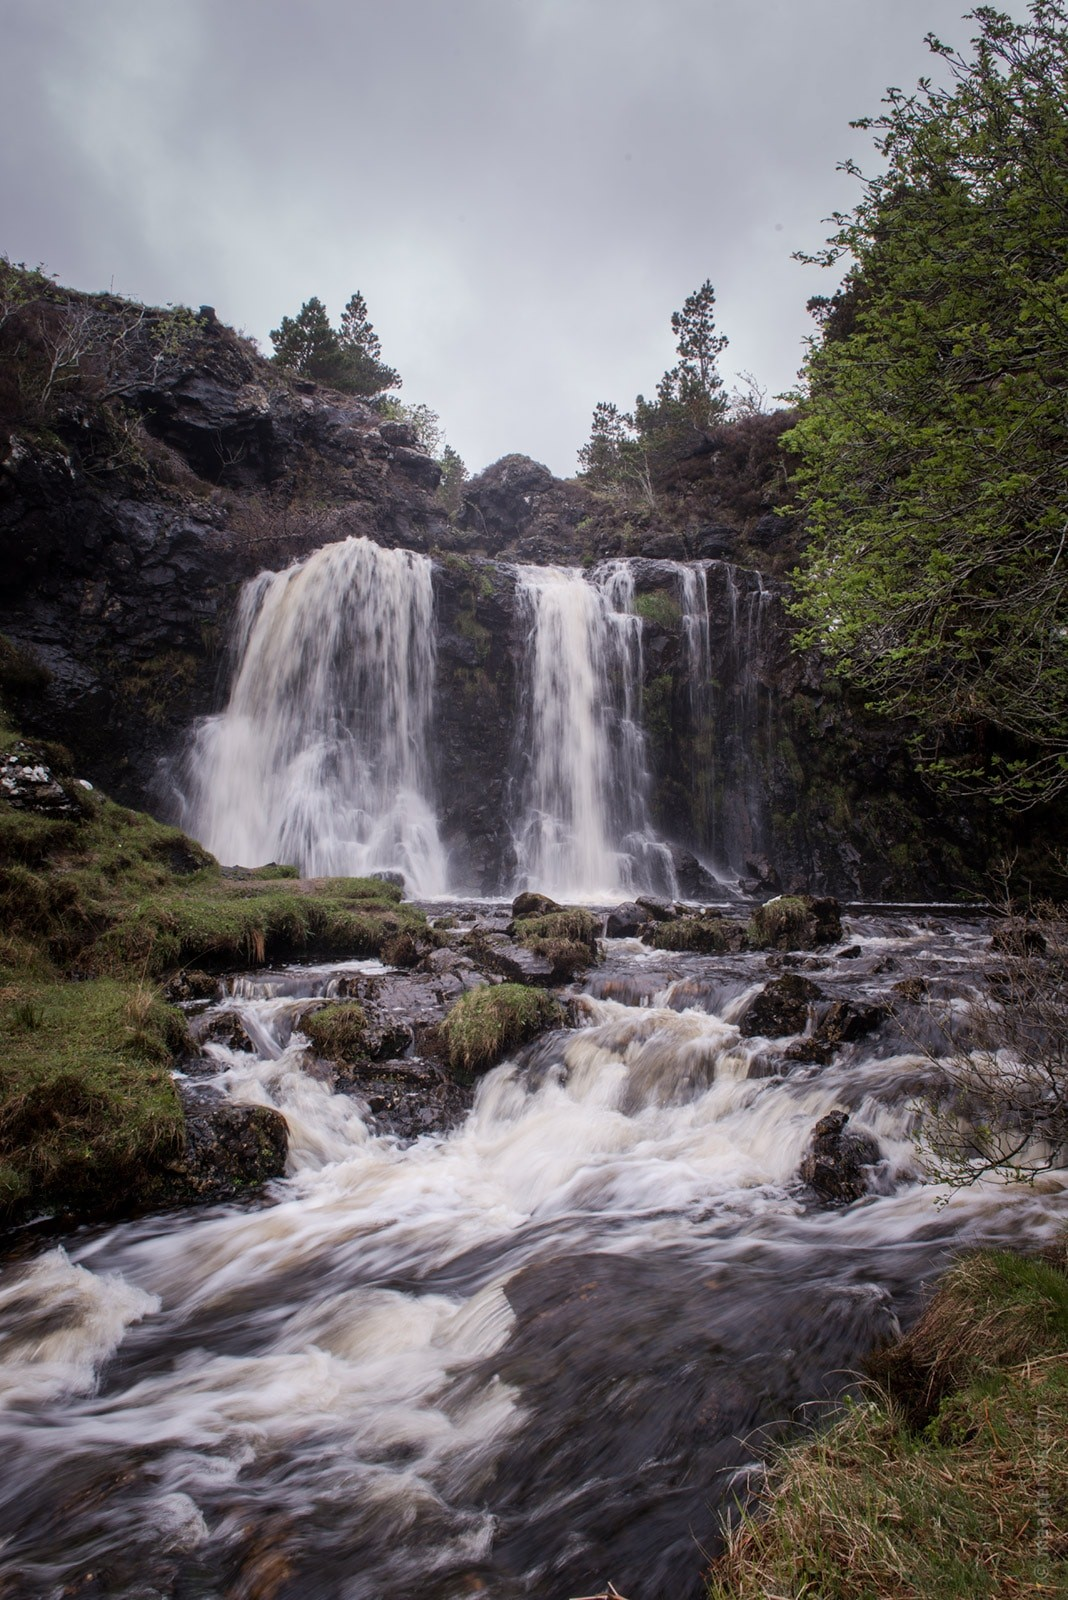 20150521 8369 1068x1600 - The Fairy Pools of Skye